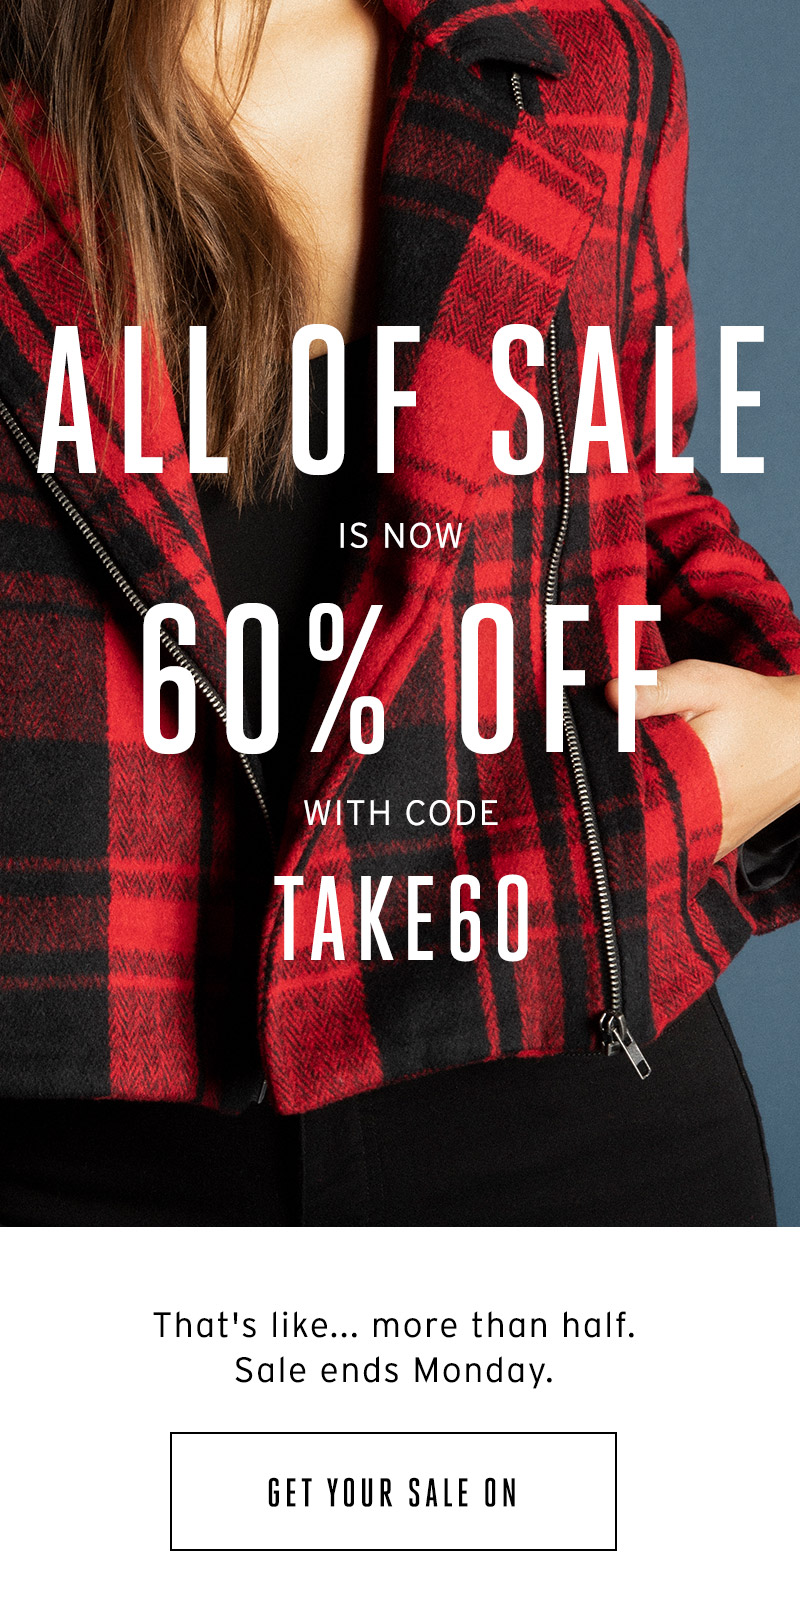 All of sale is now up to 60% off. Get your sale on.